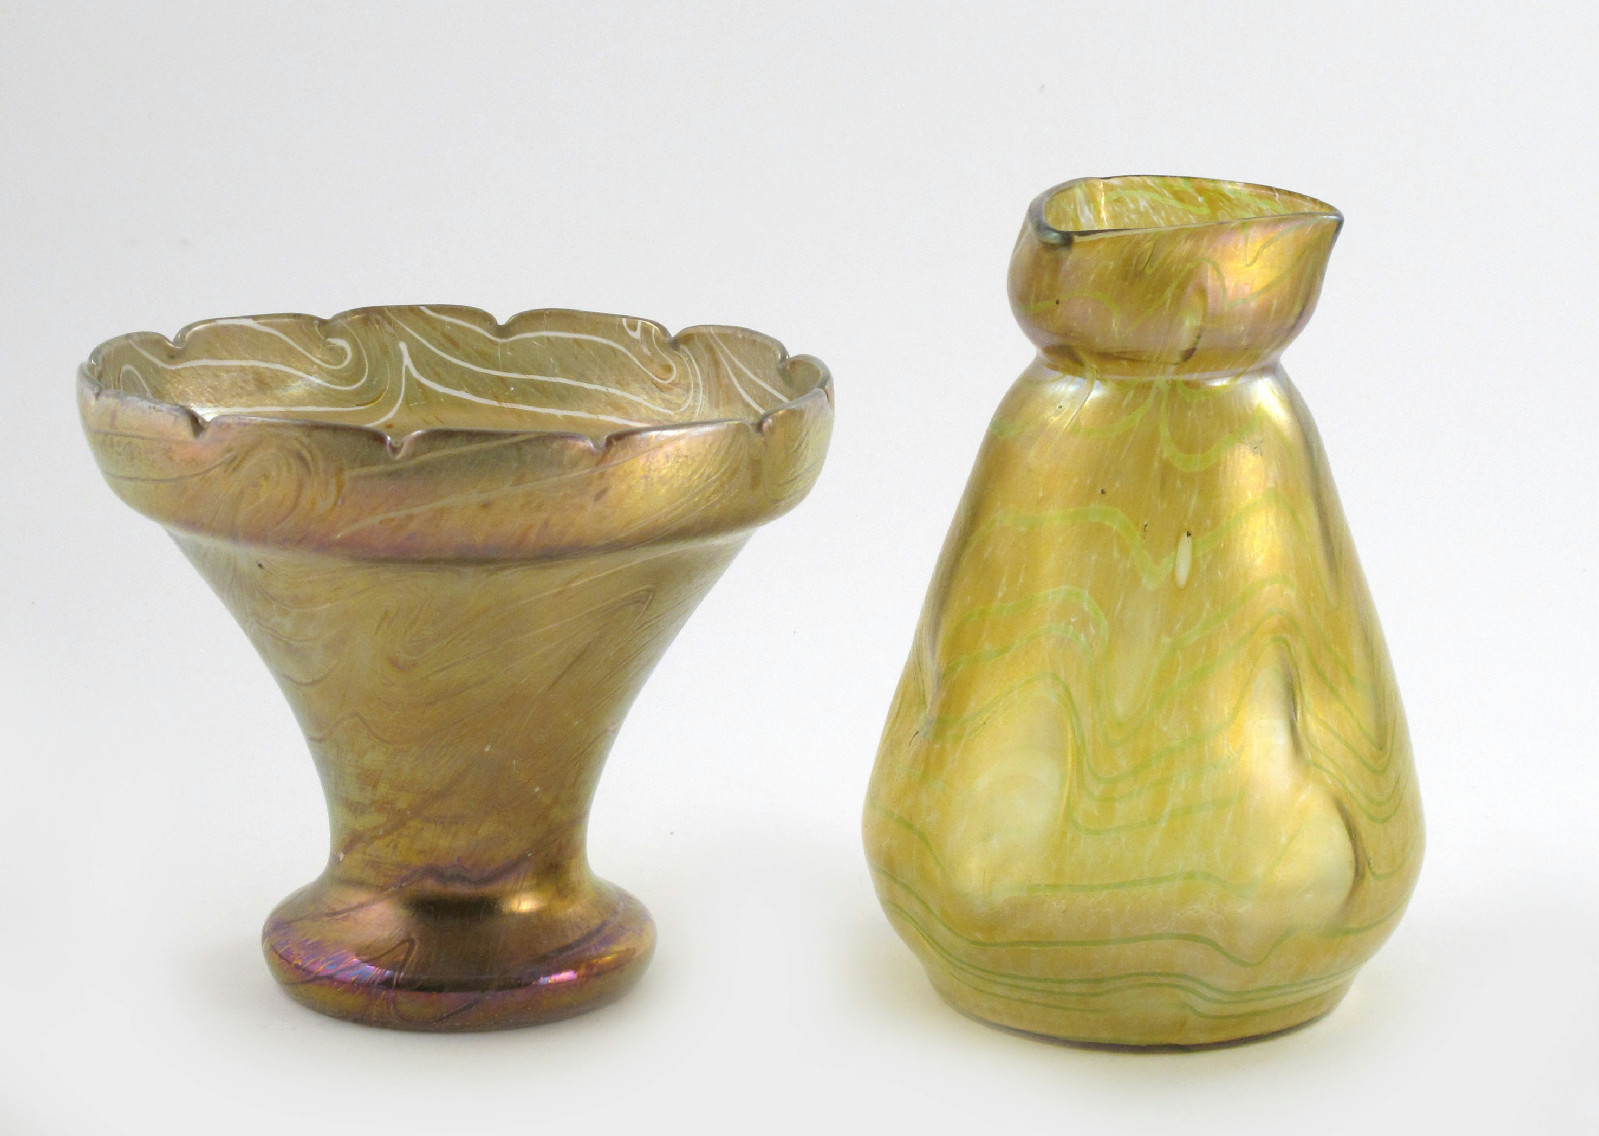 A kralik glass vase lot 1020 19th and 20th century design a kralik glass vase tapering form with pinched trilobe neck covered in a veined golden iridescent glass finish and another kralik vase unsigned 24cm reviewsmspy